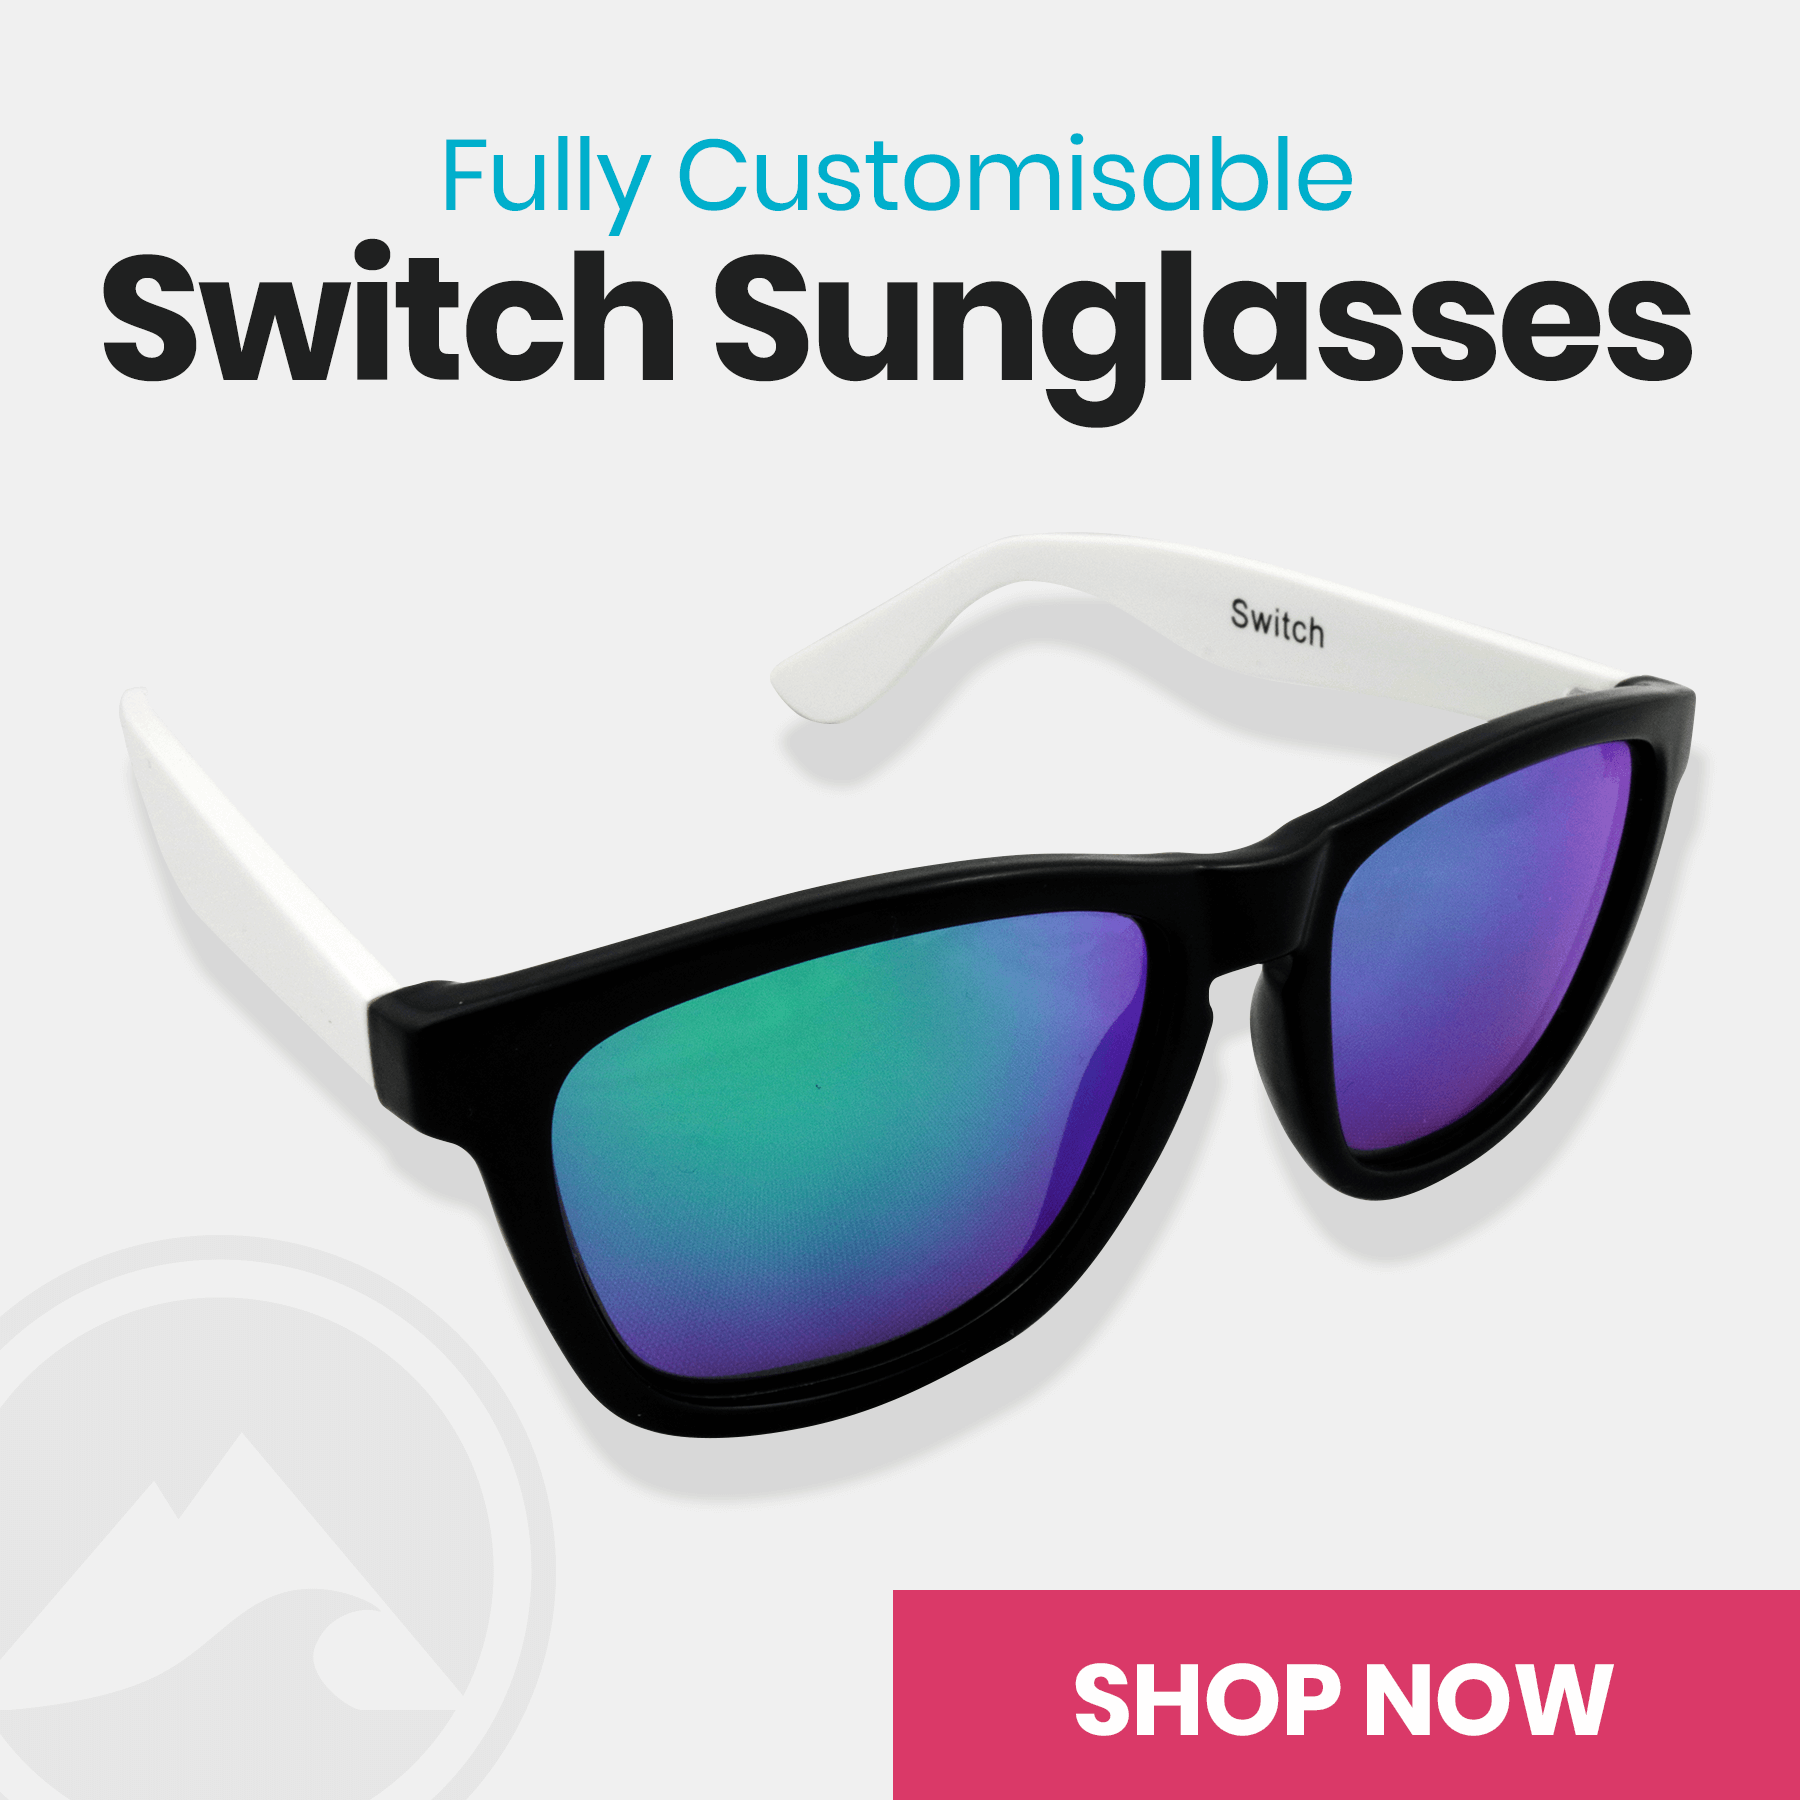 Shop for fully customisable Switch Sunglasses